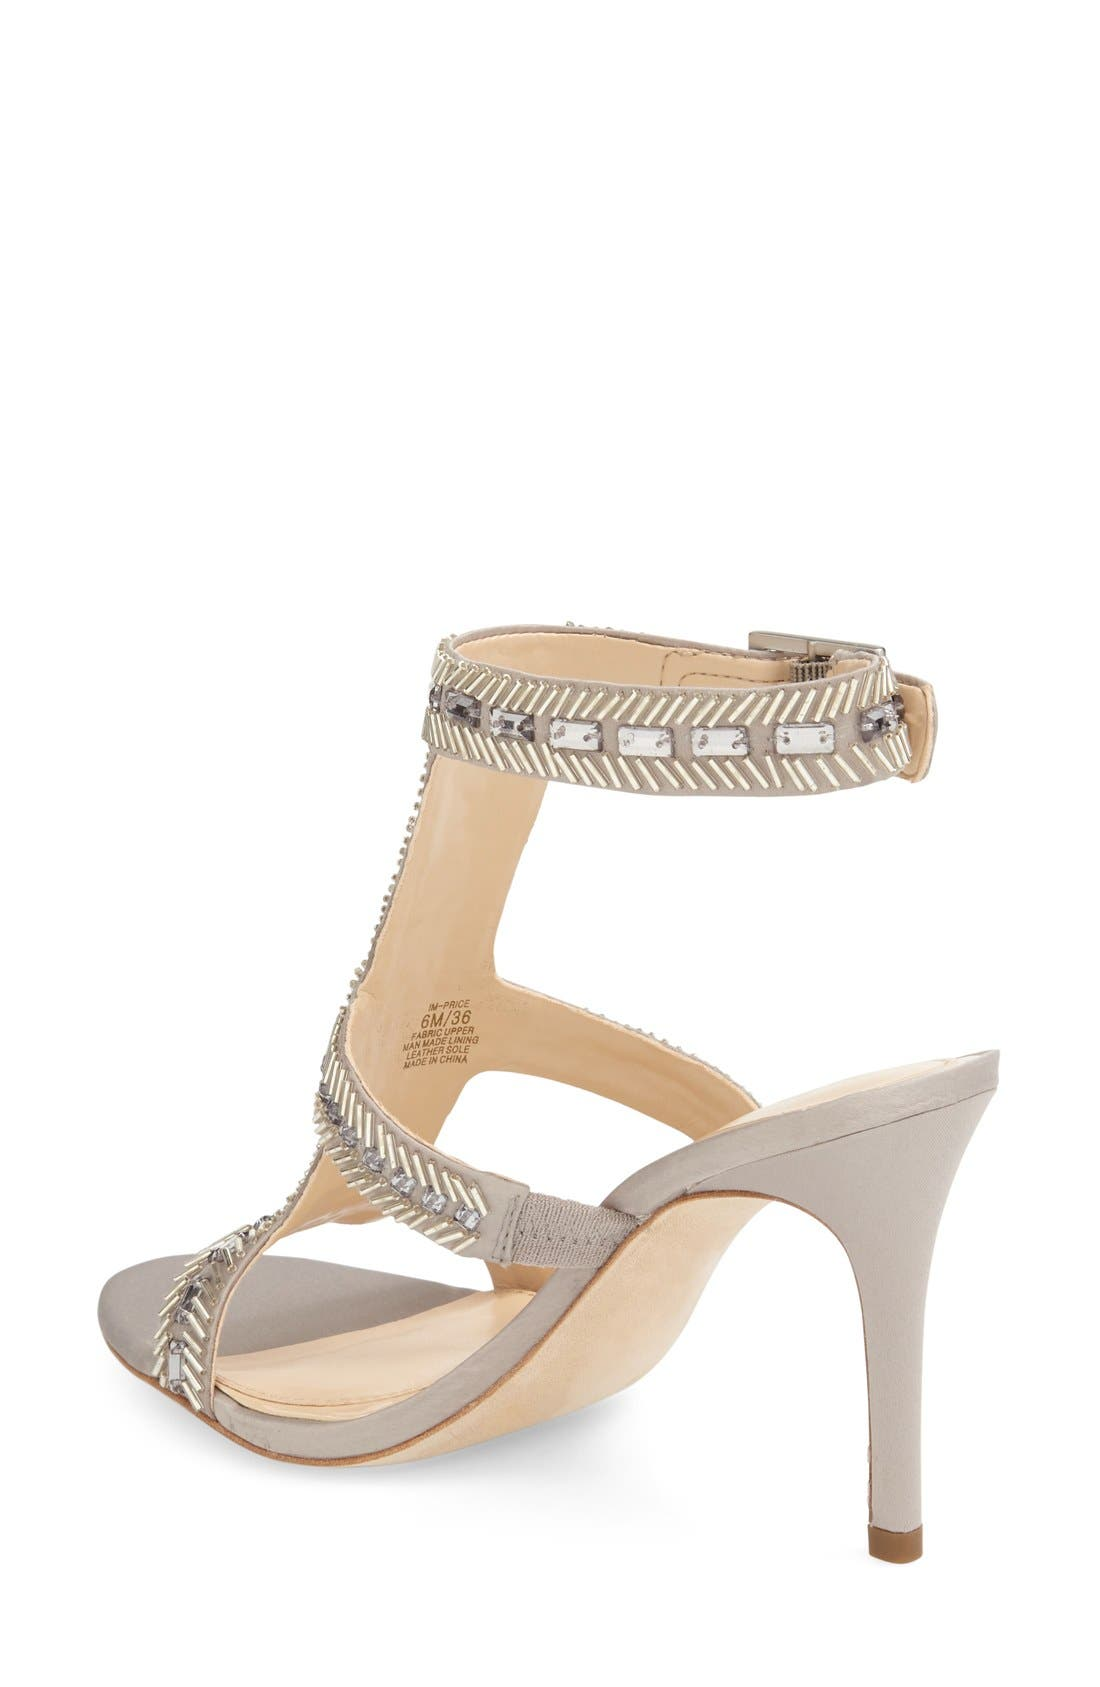 Imagine Vince Camuto 'Price' Beaded T-Strap Sandal,                             Alternate thumbnail 2, color,                             Stone